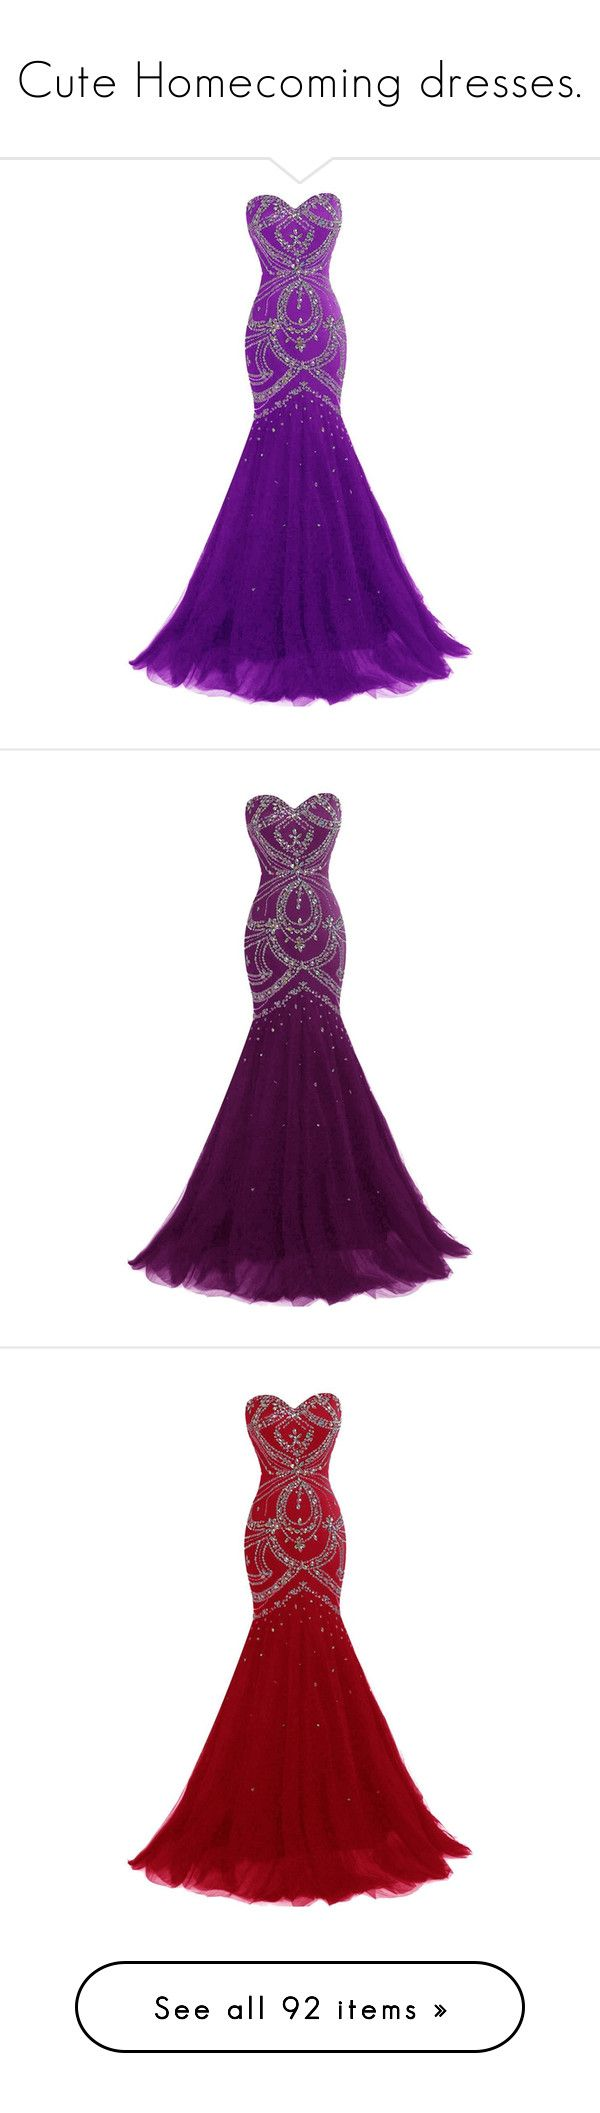 """""""Cute Homecoming dresses."""" by crazygirlandproud ❤ liked on Polyvore featuring dresses, gowns, long dress, tulle prom dresses, long evening dresses, beaded gown, corset prom dresses, beaded prom dresses, long gowns and long purple dress"""